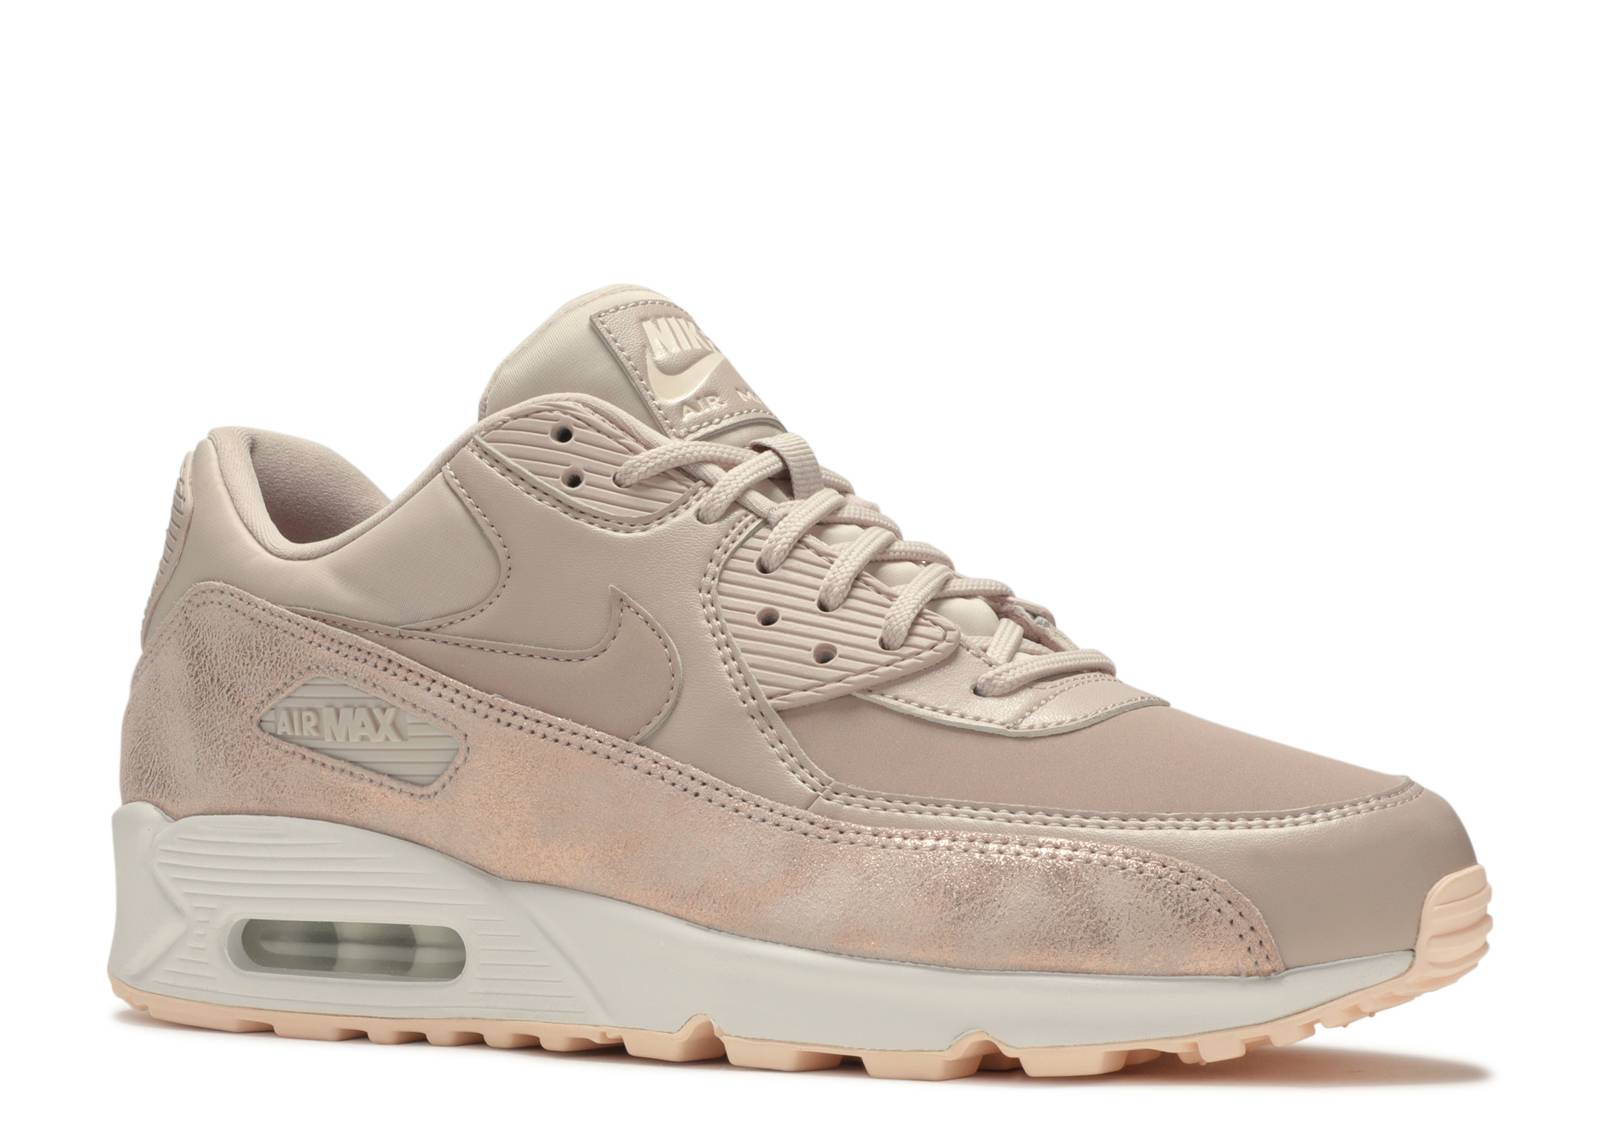 Buy online Nike Wmns Air Max 1 PRM in Particle Beige